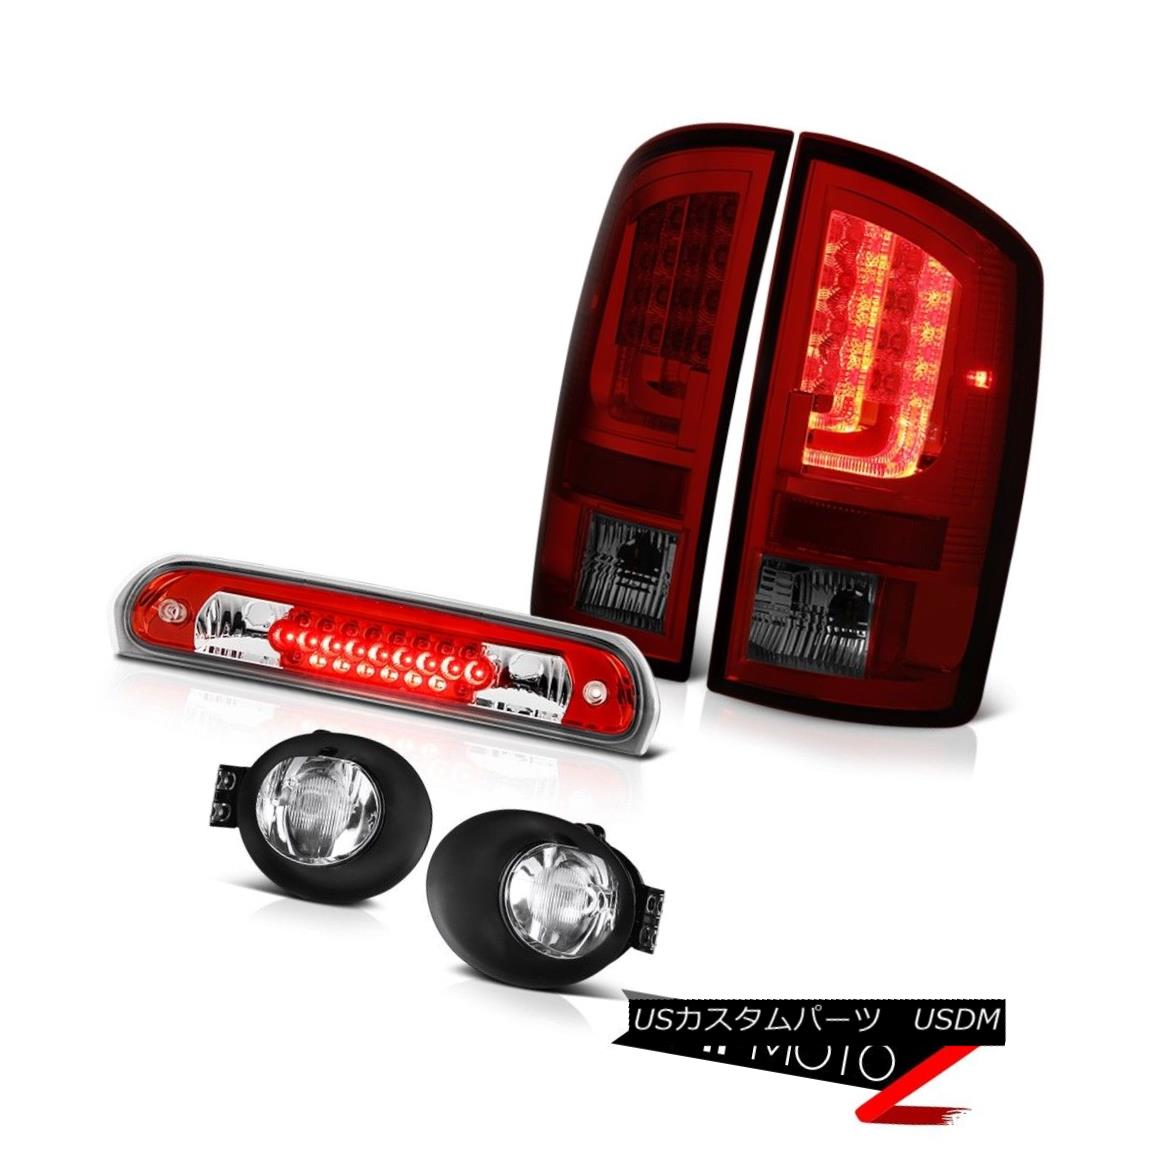 テールライト 2003-2006 Dodge Ram 2500 5.7L Taillights Chrome Foglamps Red High STop Lamp LED 2003-2006 Dodge Ram 2500 5.7LテールライトクロームフォグランプレッドハイSTOPランプLED